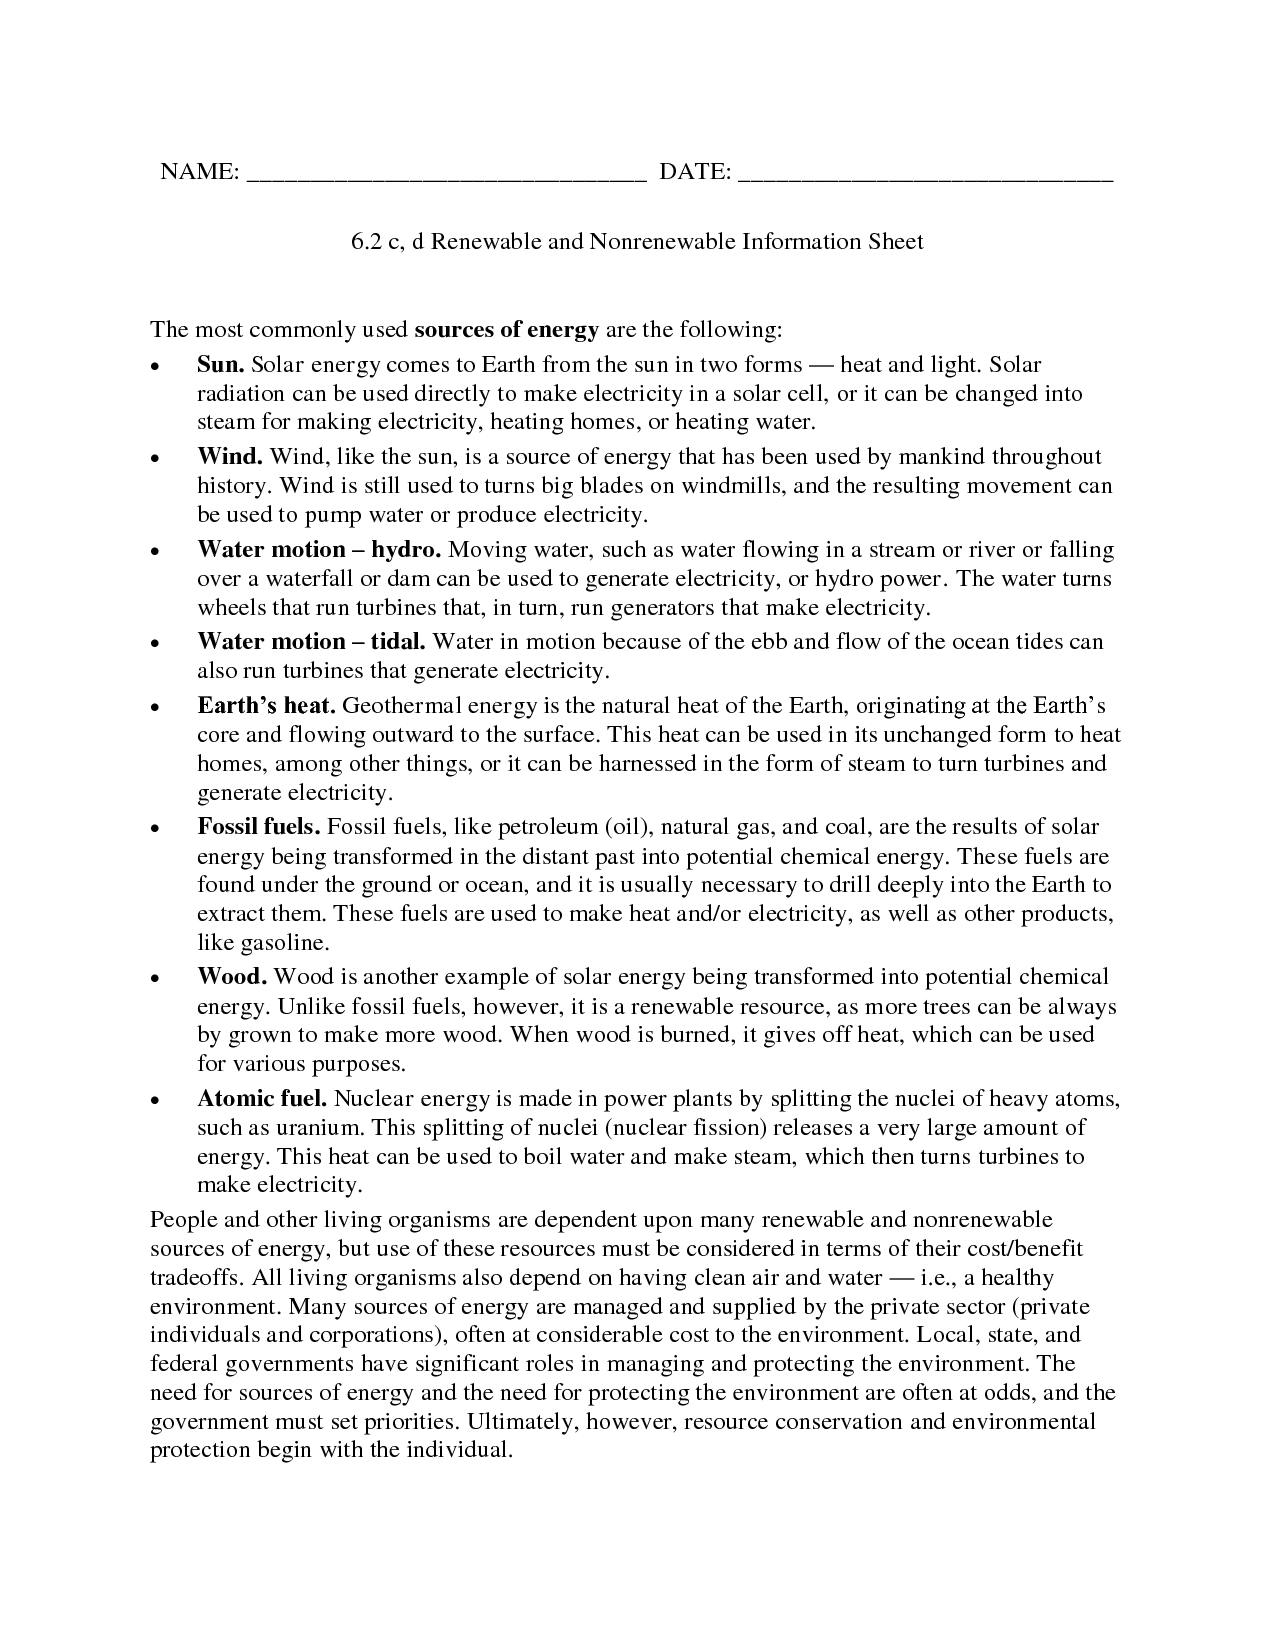 Renewables Renewable And Nonrenewable Worksheet Answers